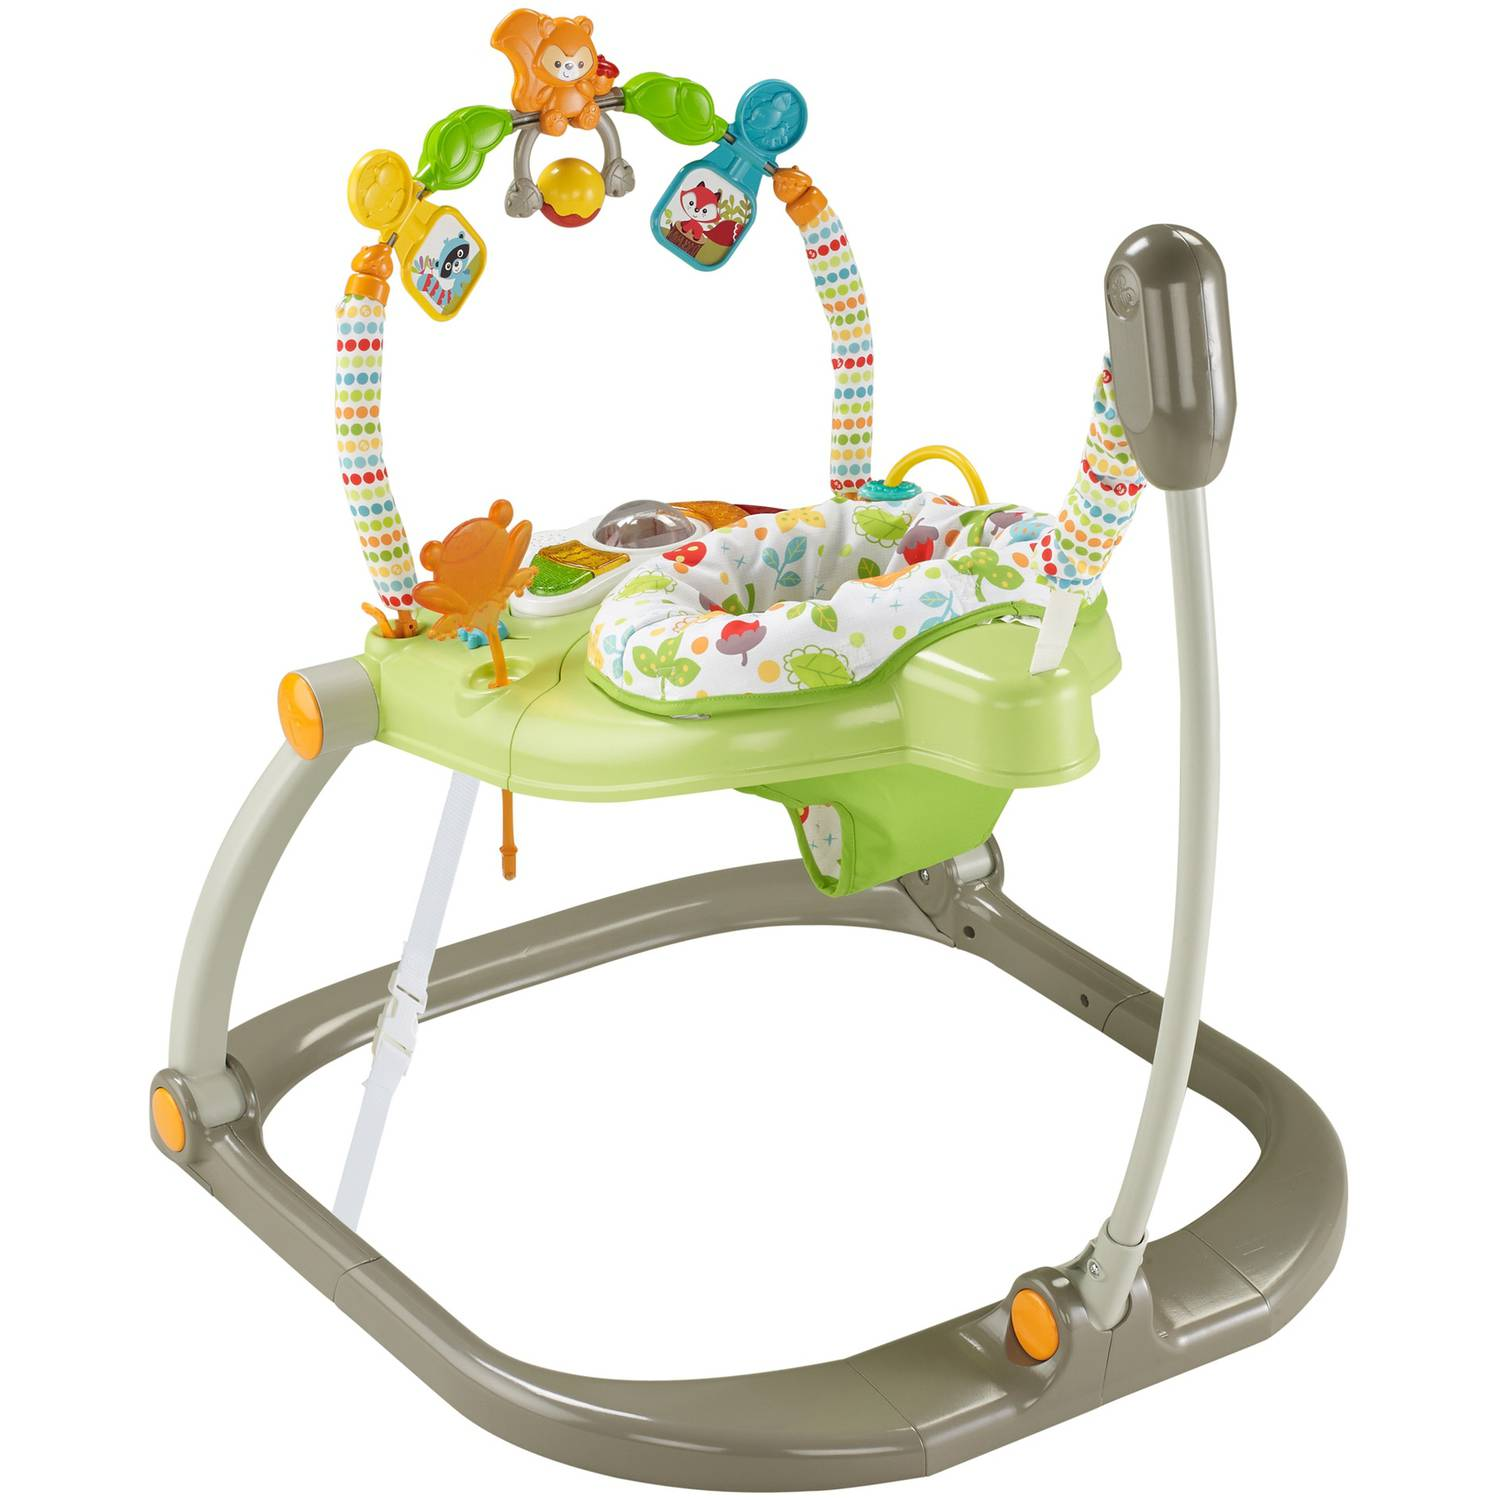 Fisher Price Woodland Friends SpaceSaver Jumperoo by Fisher-Price